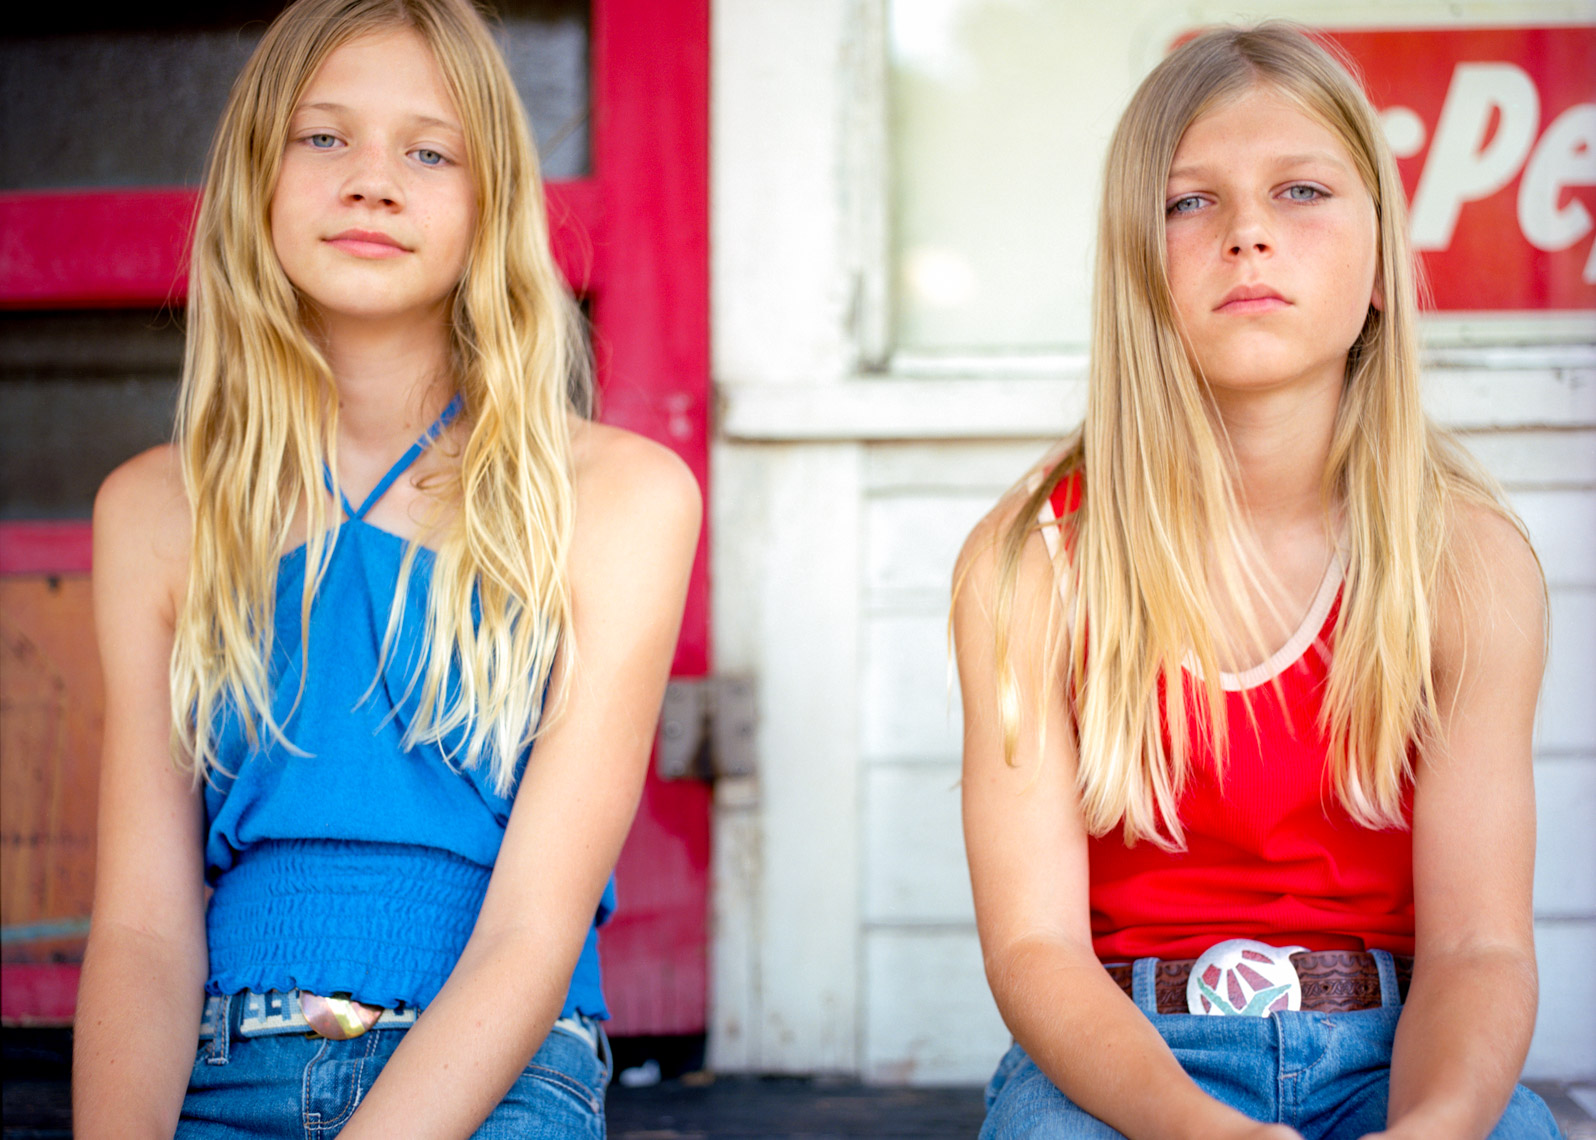 Fashion Lifestyle Image of Tween Girl and Boy | Tosca Radigonda Photography